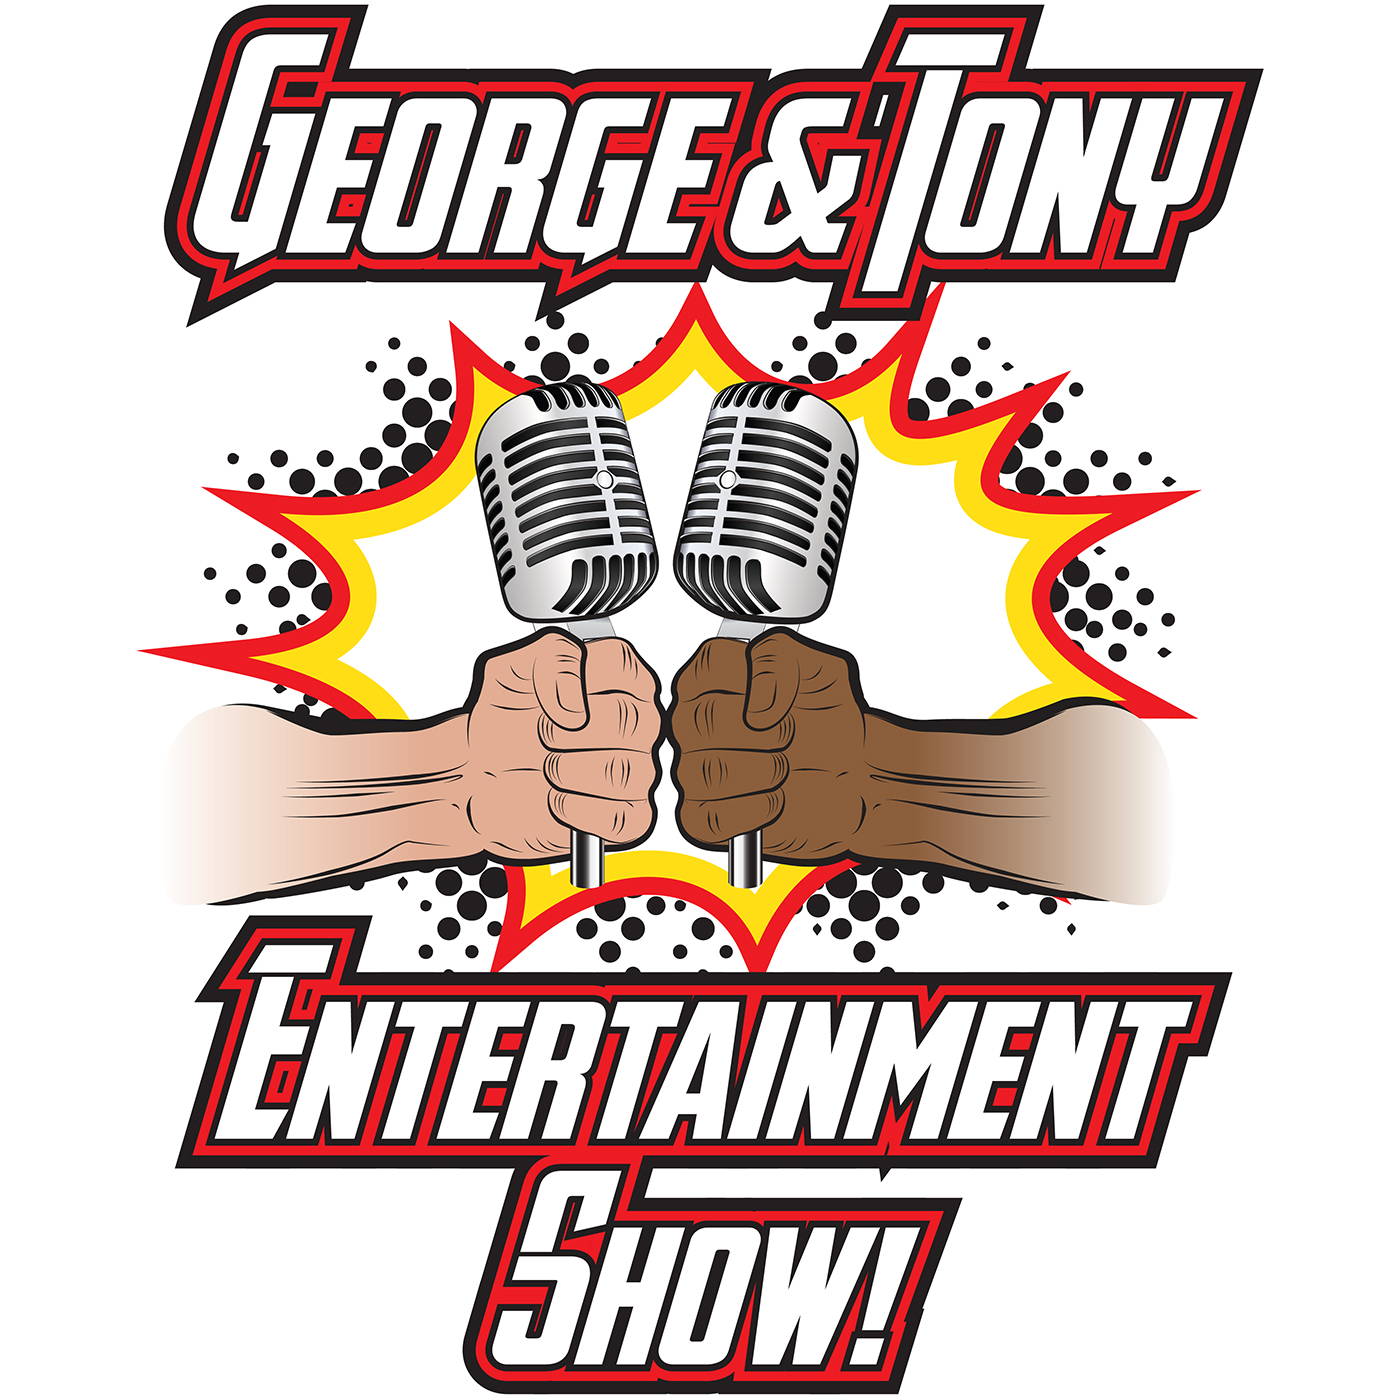 George and Tony Entertainment Show #38